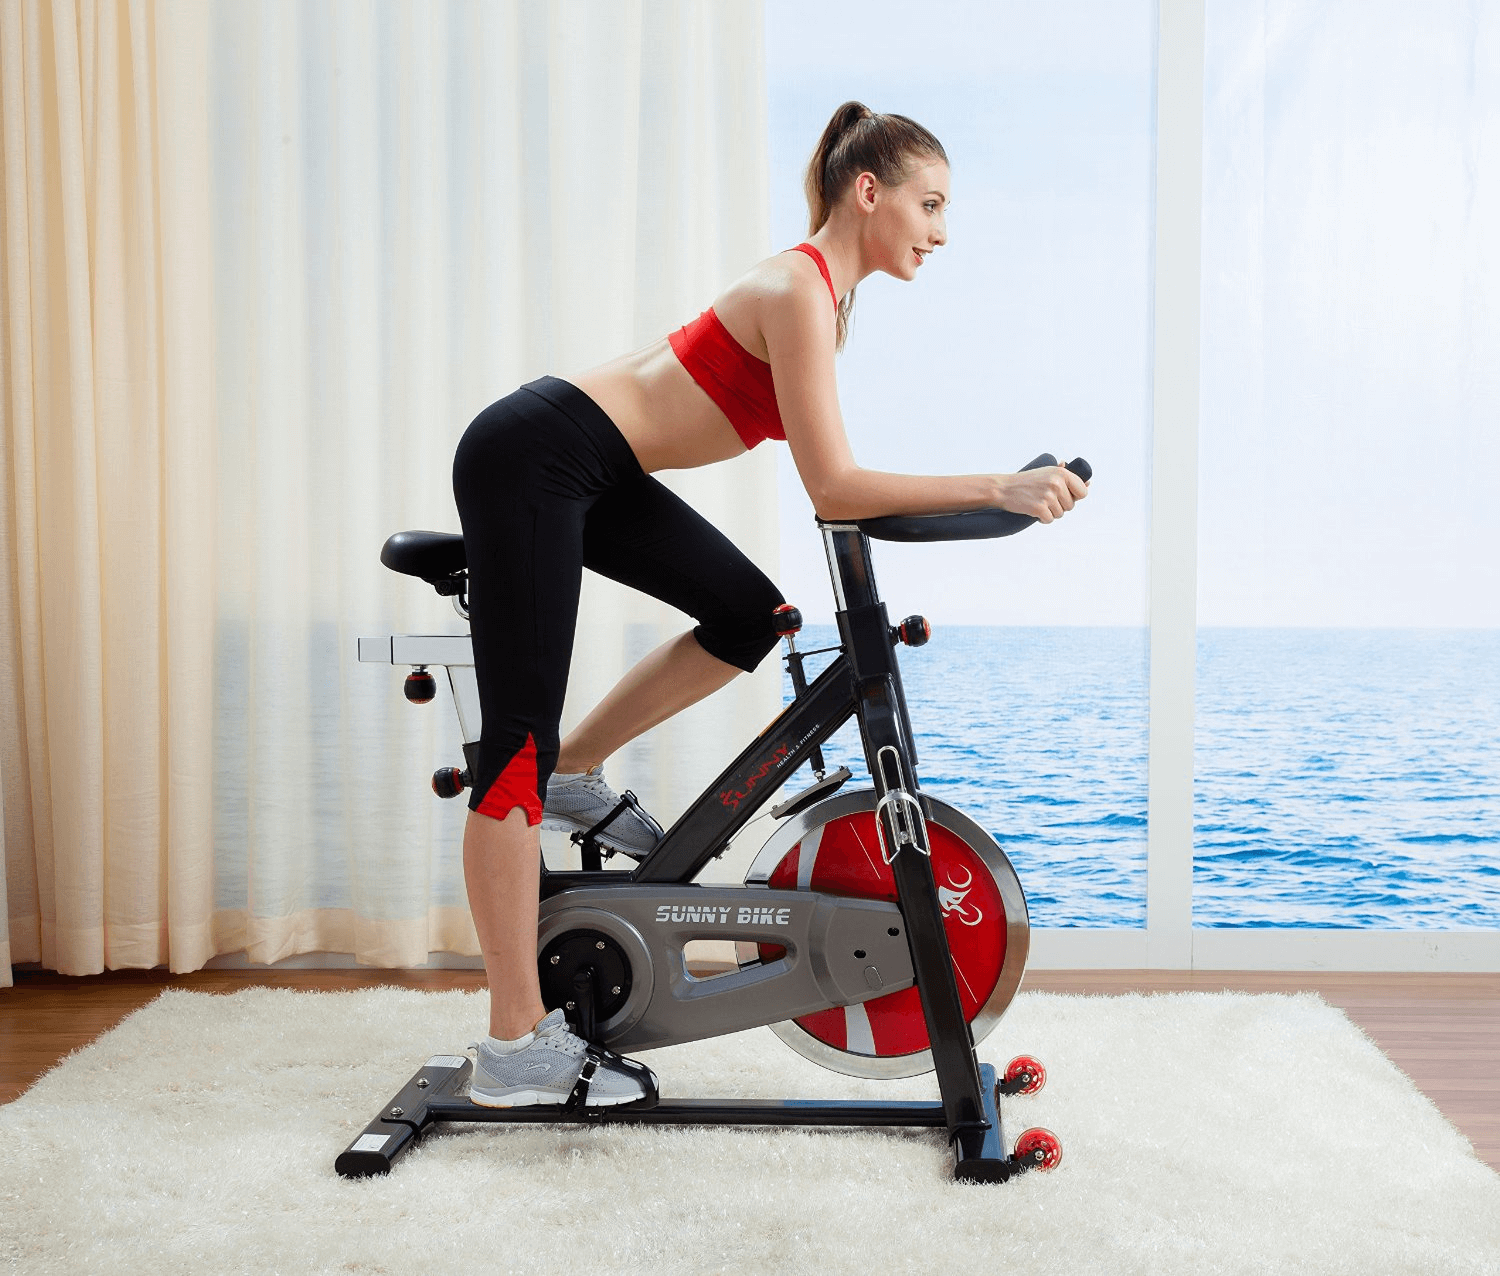 Bring fitness indoors